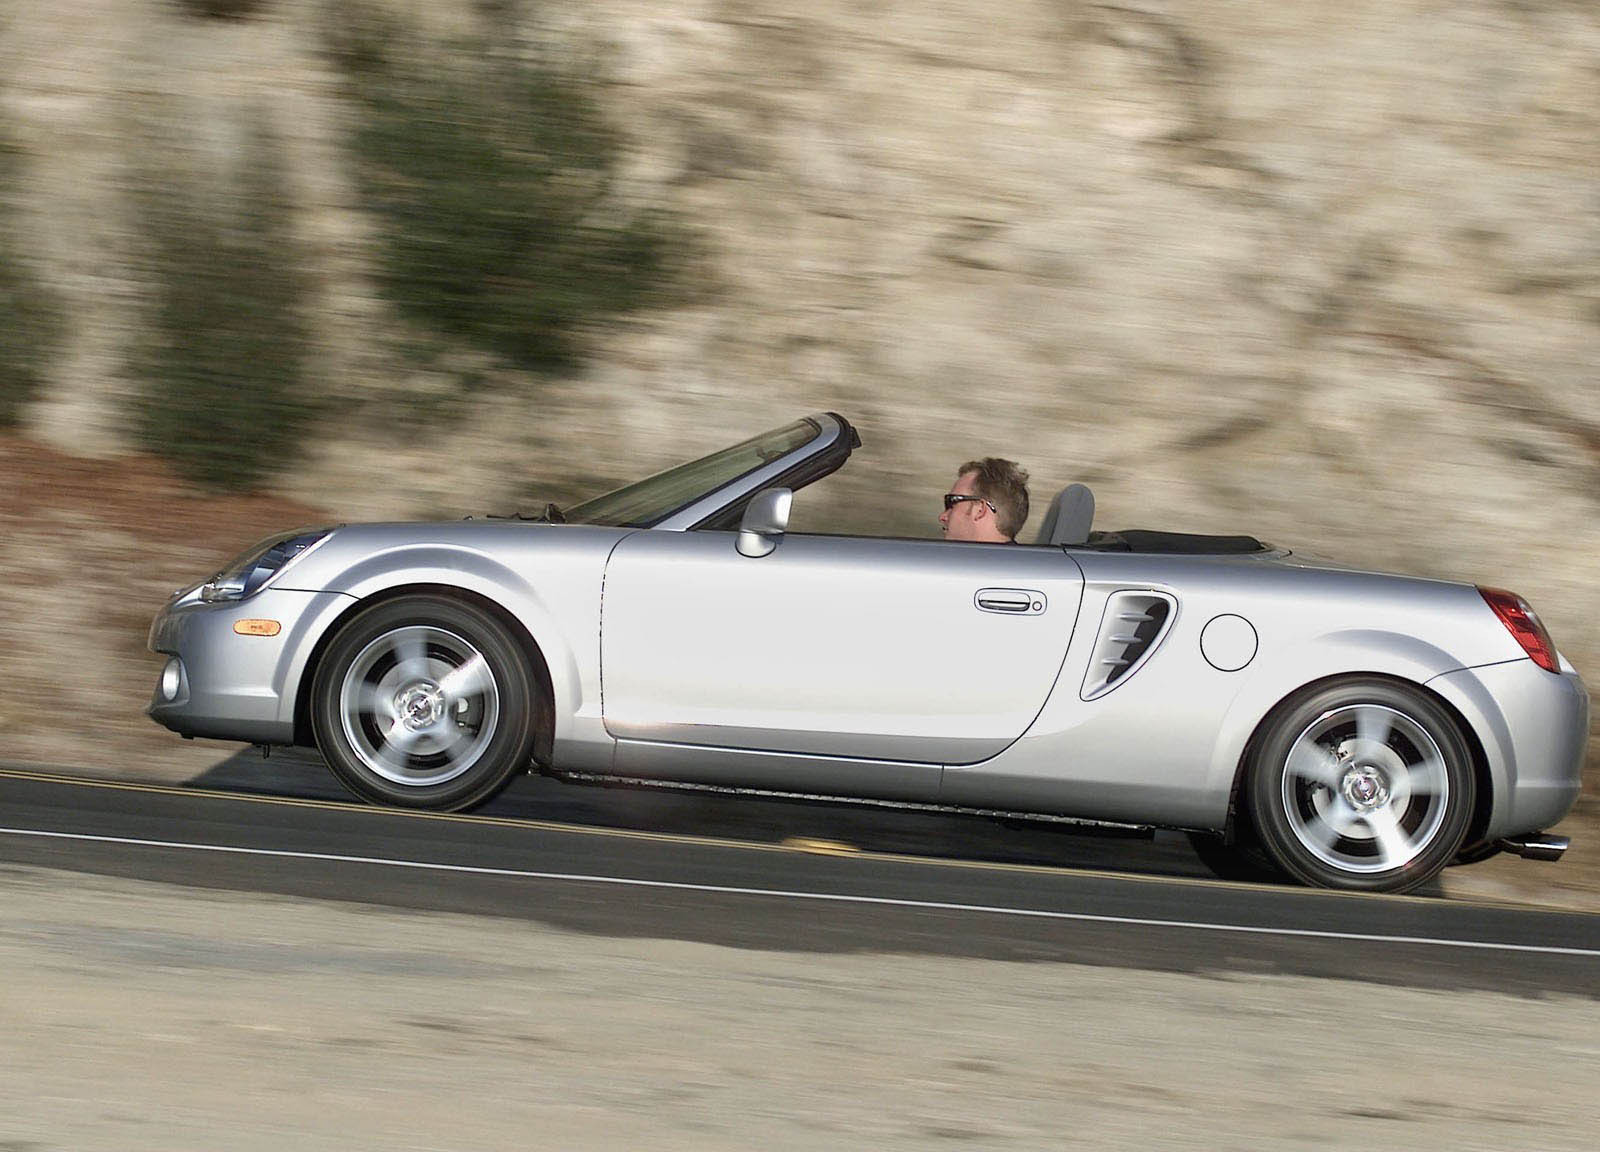 2000 2005 Toyota Mr2 Spyder Review Gallery Top Speed